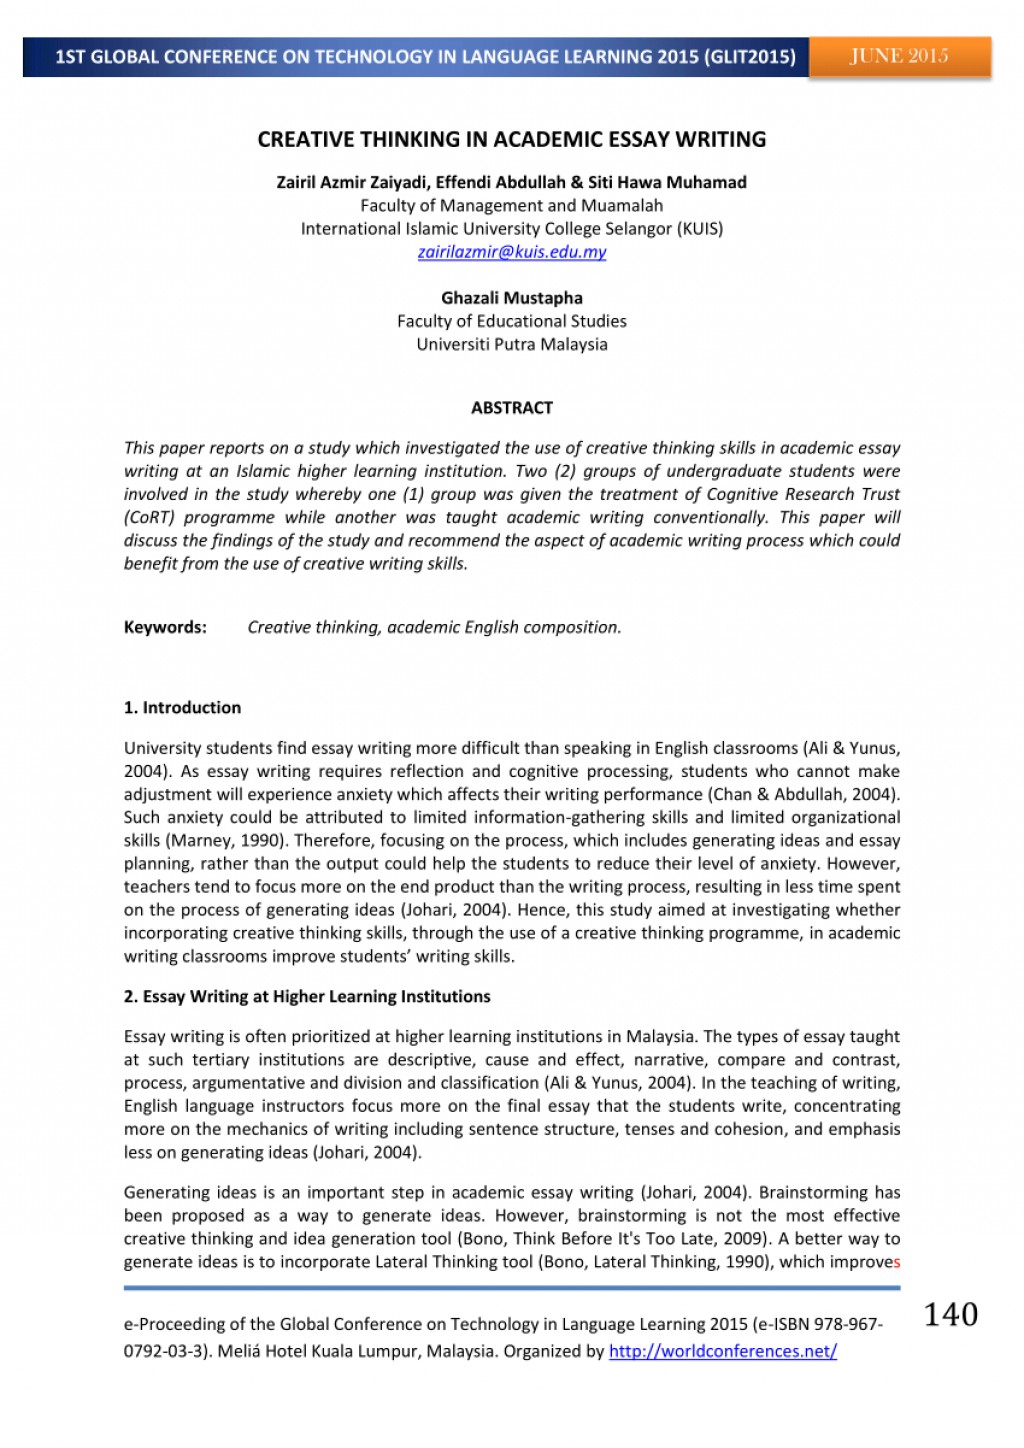 004 Academic Essay Writing Largepreview Awful Structure Example Skills Pdf Large